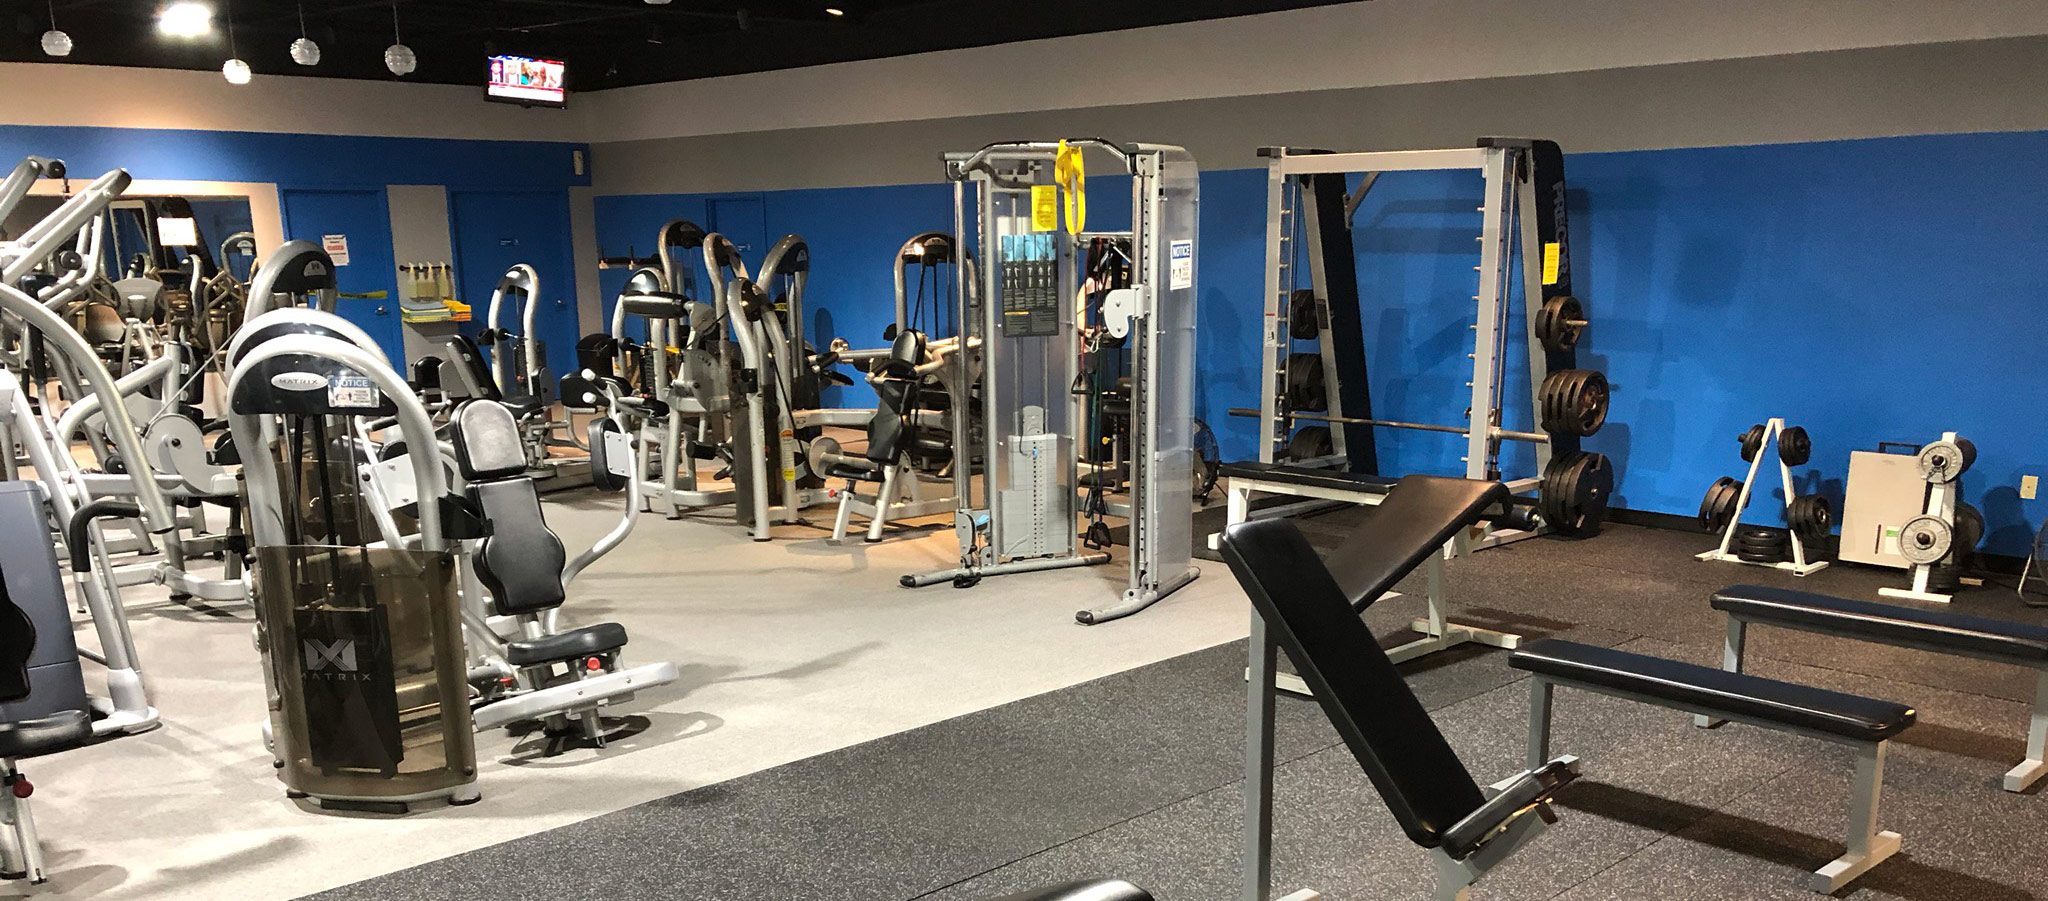 Ally Fitness 24 Hour Gym And Health Club Located In Lima Ohio Open 24 7